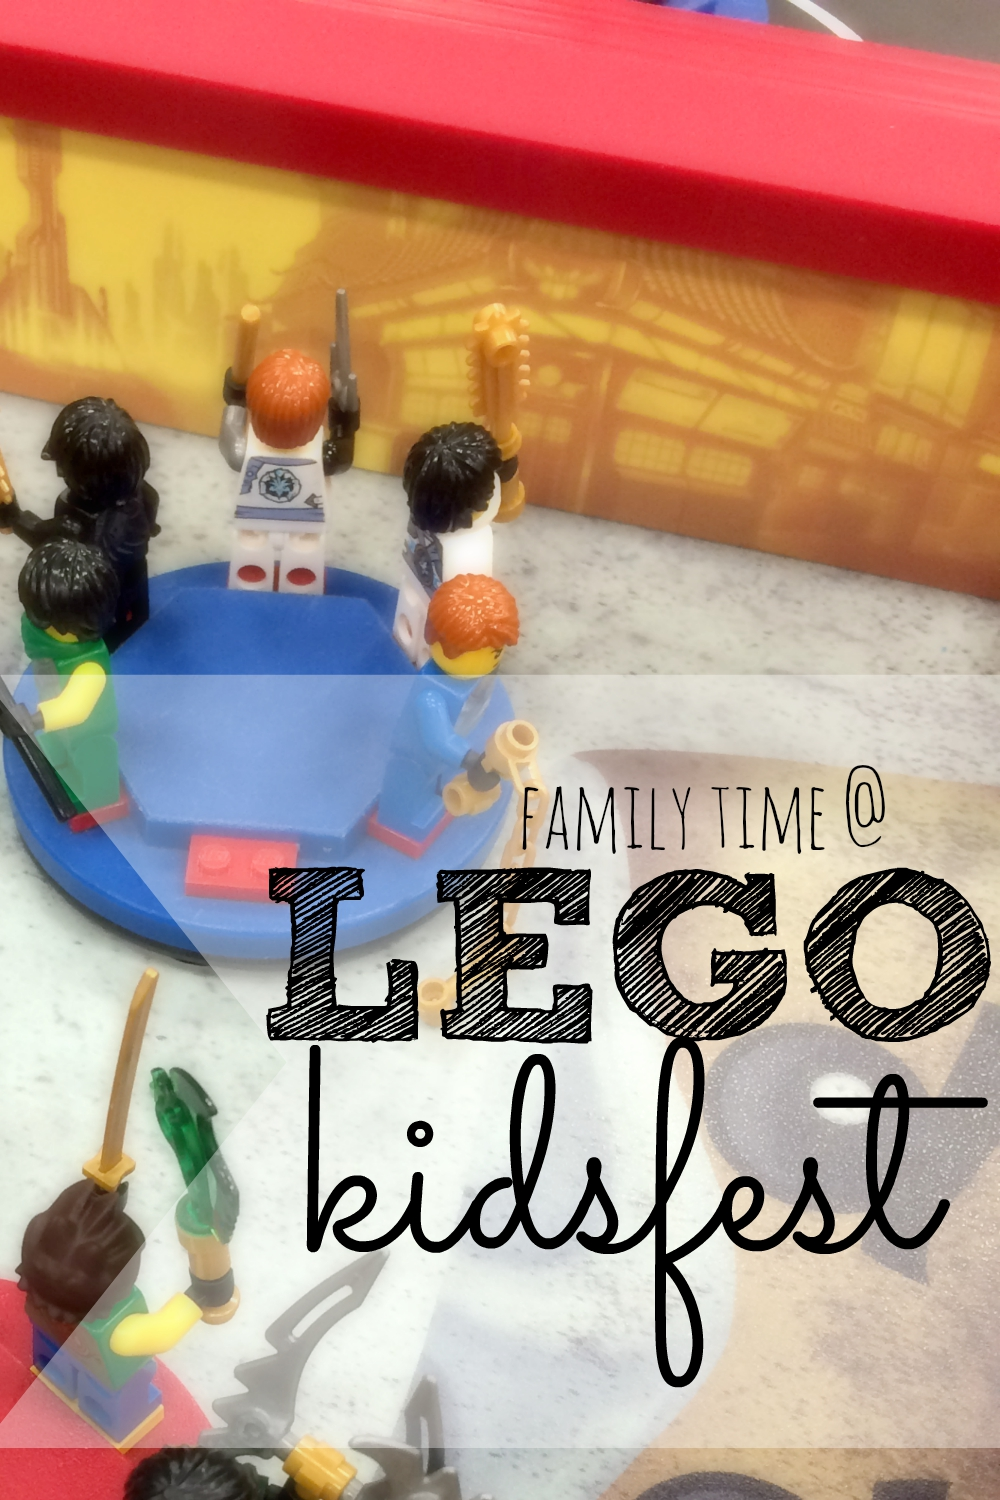 If you have the chance, you should definitely check out LEGO Kidsfest!